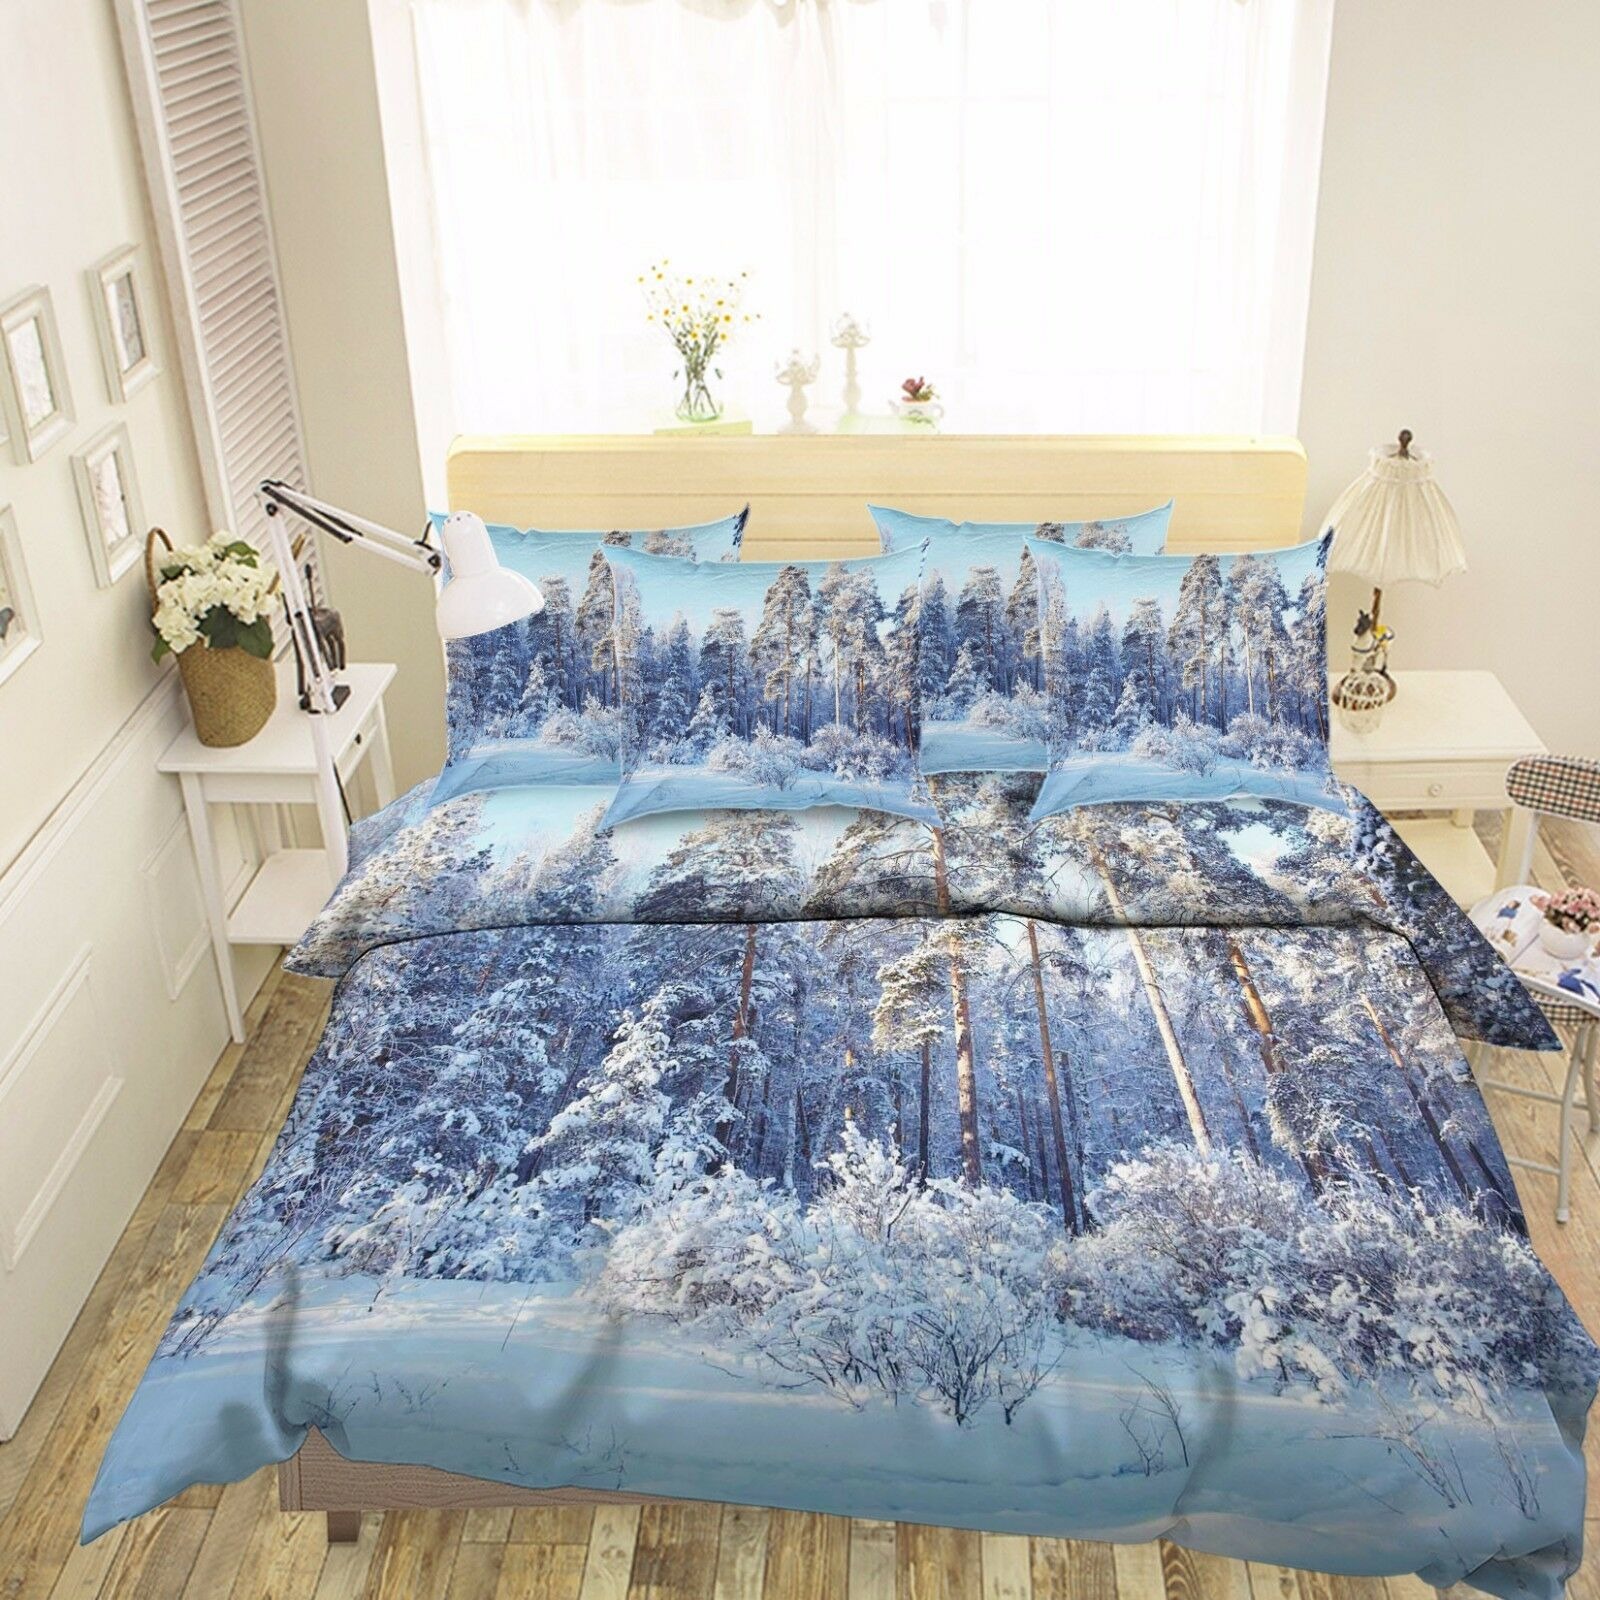 3D Snowy Woods 74 Bed Pillowcases Quilt Duvet Cover Set Single Queen AU Lemon